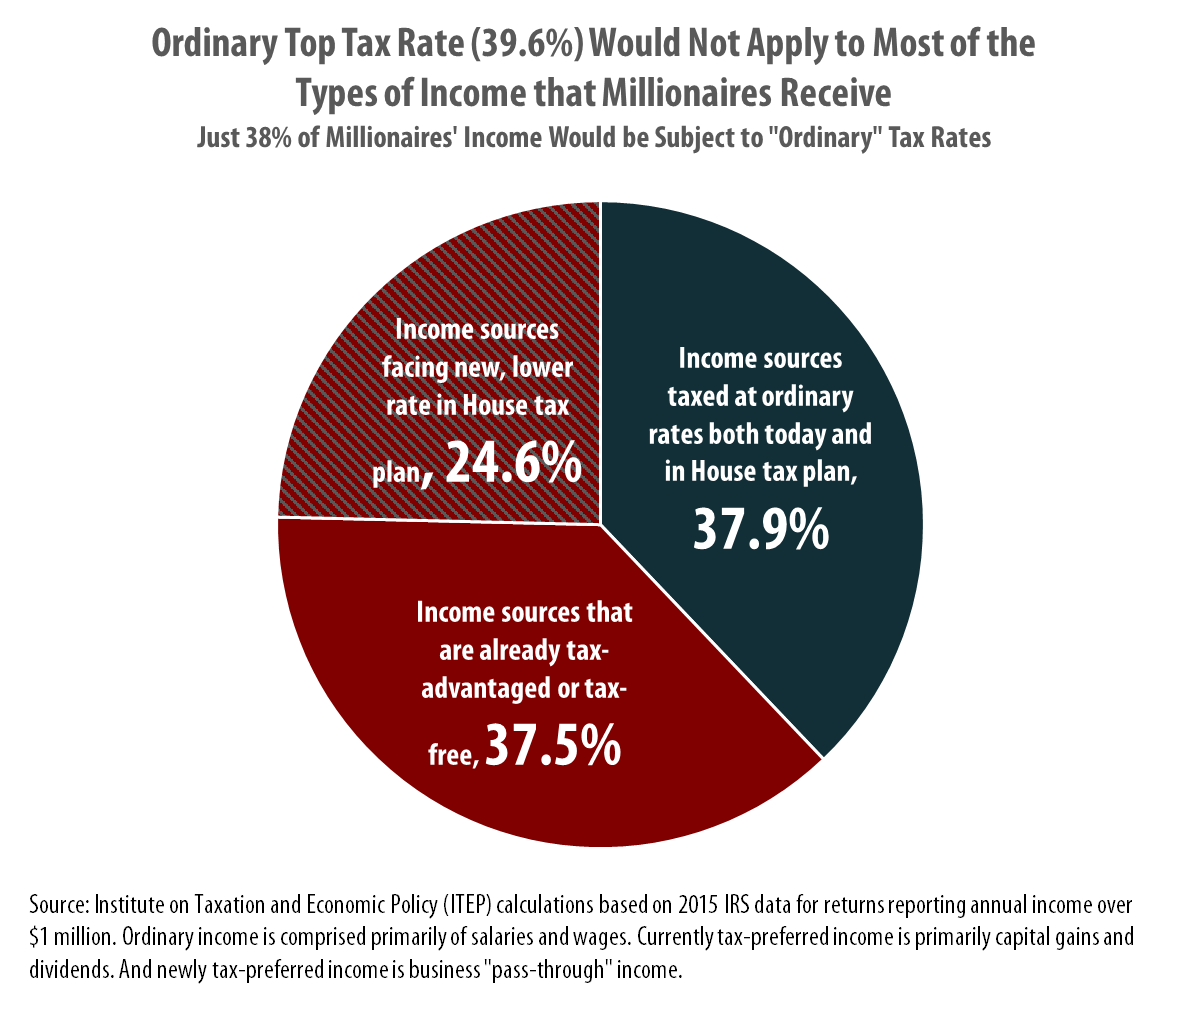 House Tax Plan Will Keep 39.6% Top Rate, But That Won't Matter for Most Types of Income Going to the Rich